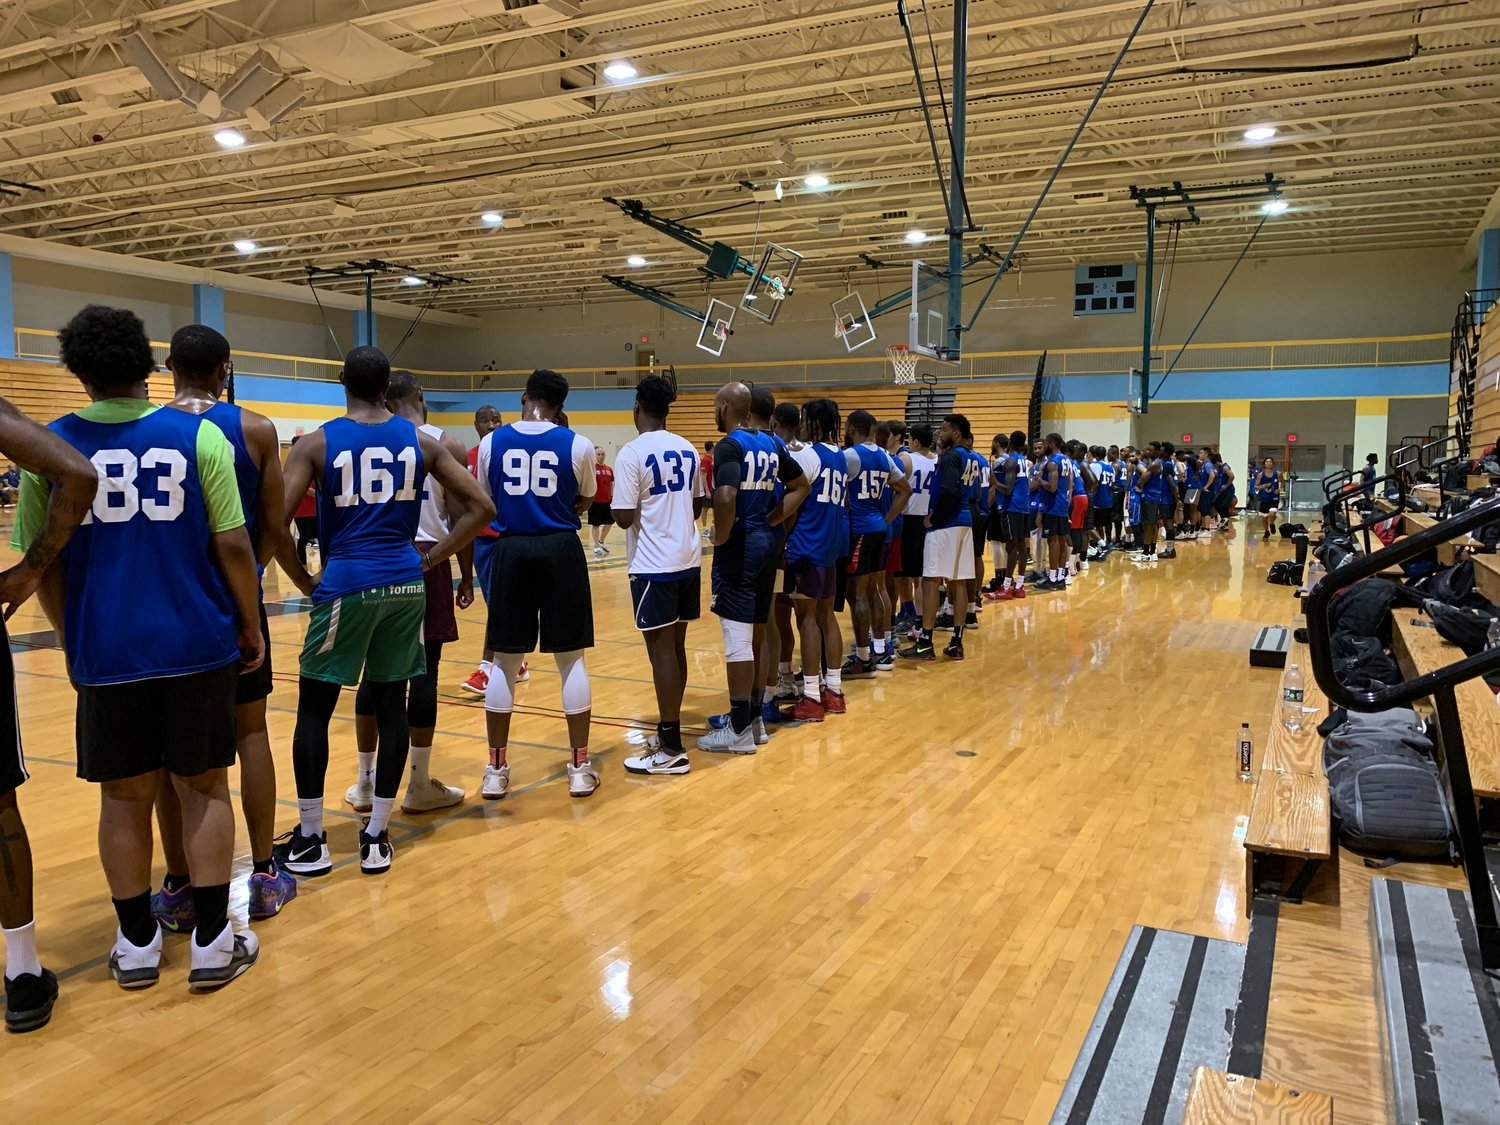 120 players including Michael Lugo lineup at the annual Long Island Nets open tryout.